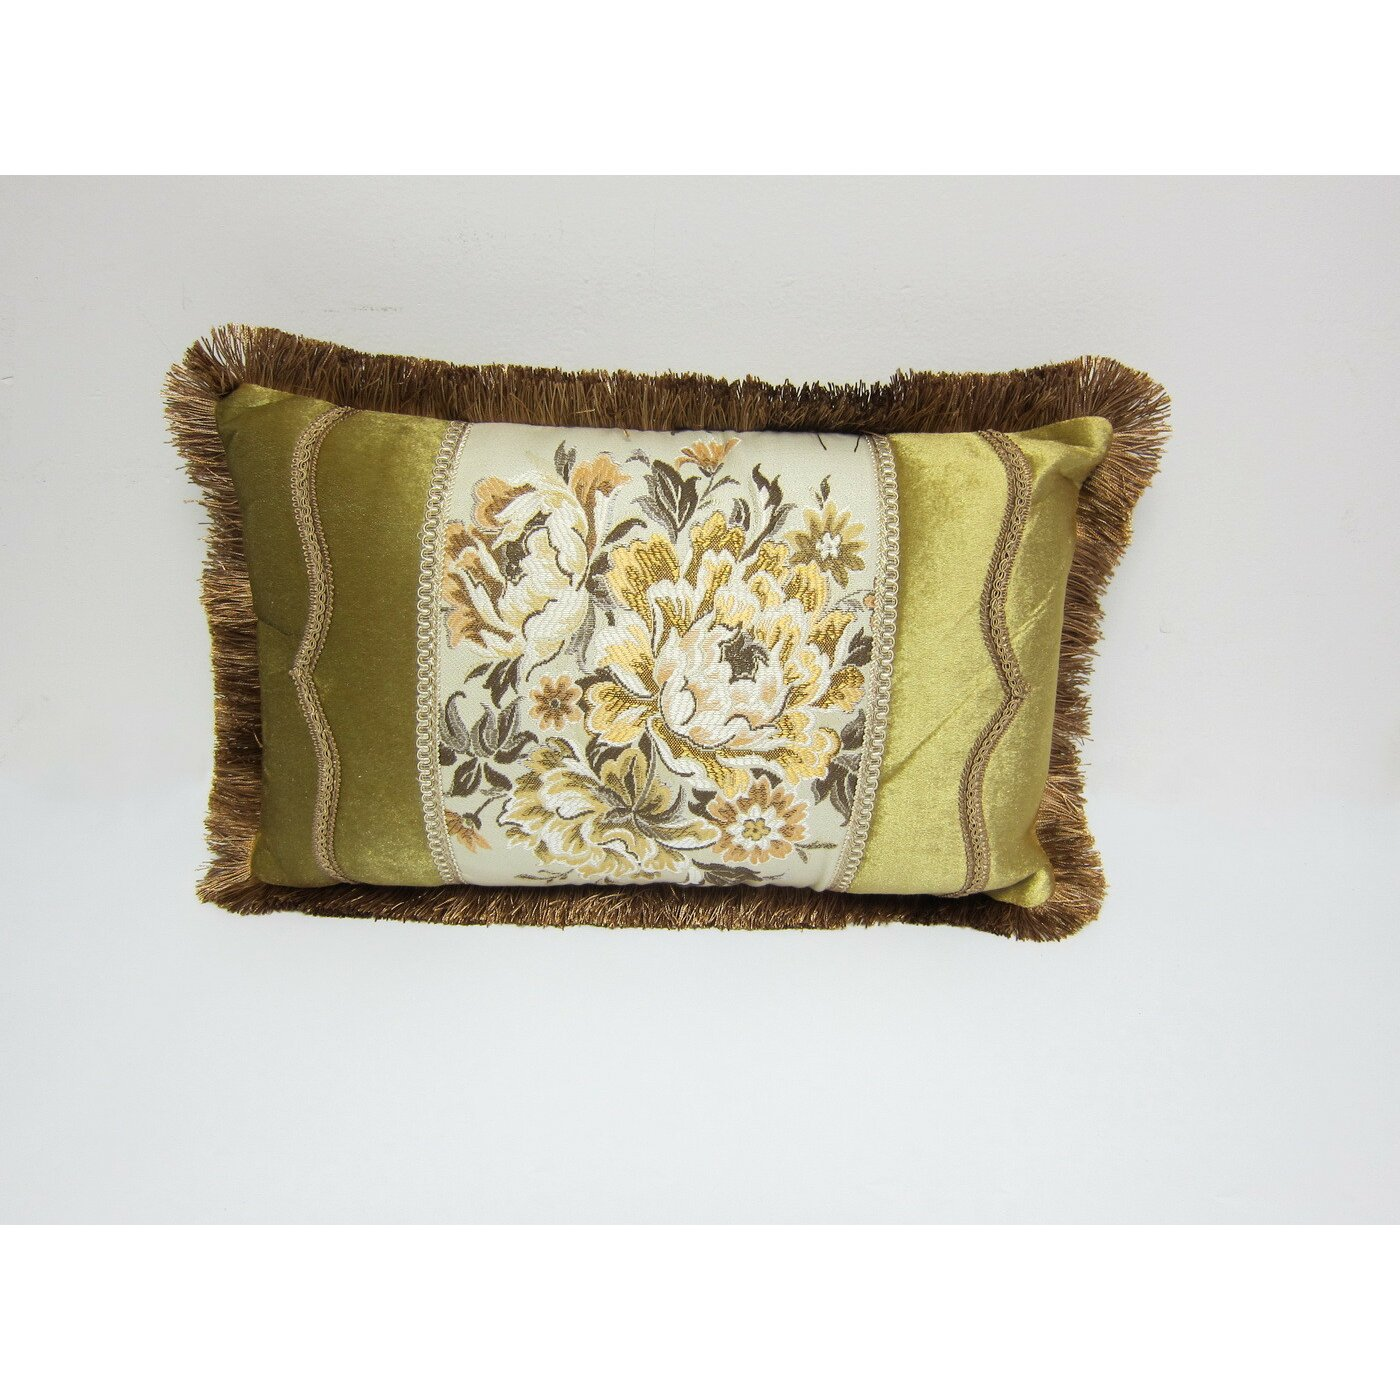 Decorative Pillow Wayfair : AirDoDo European Floral Decorative Lumbar Pillow Cover Wayfair